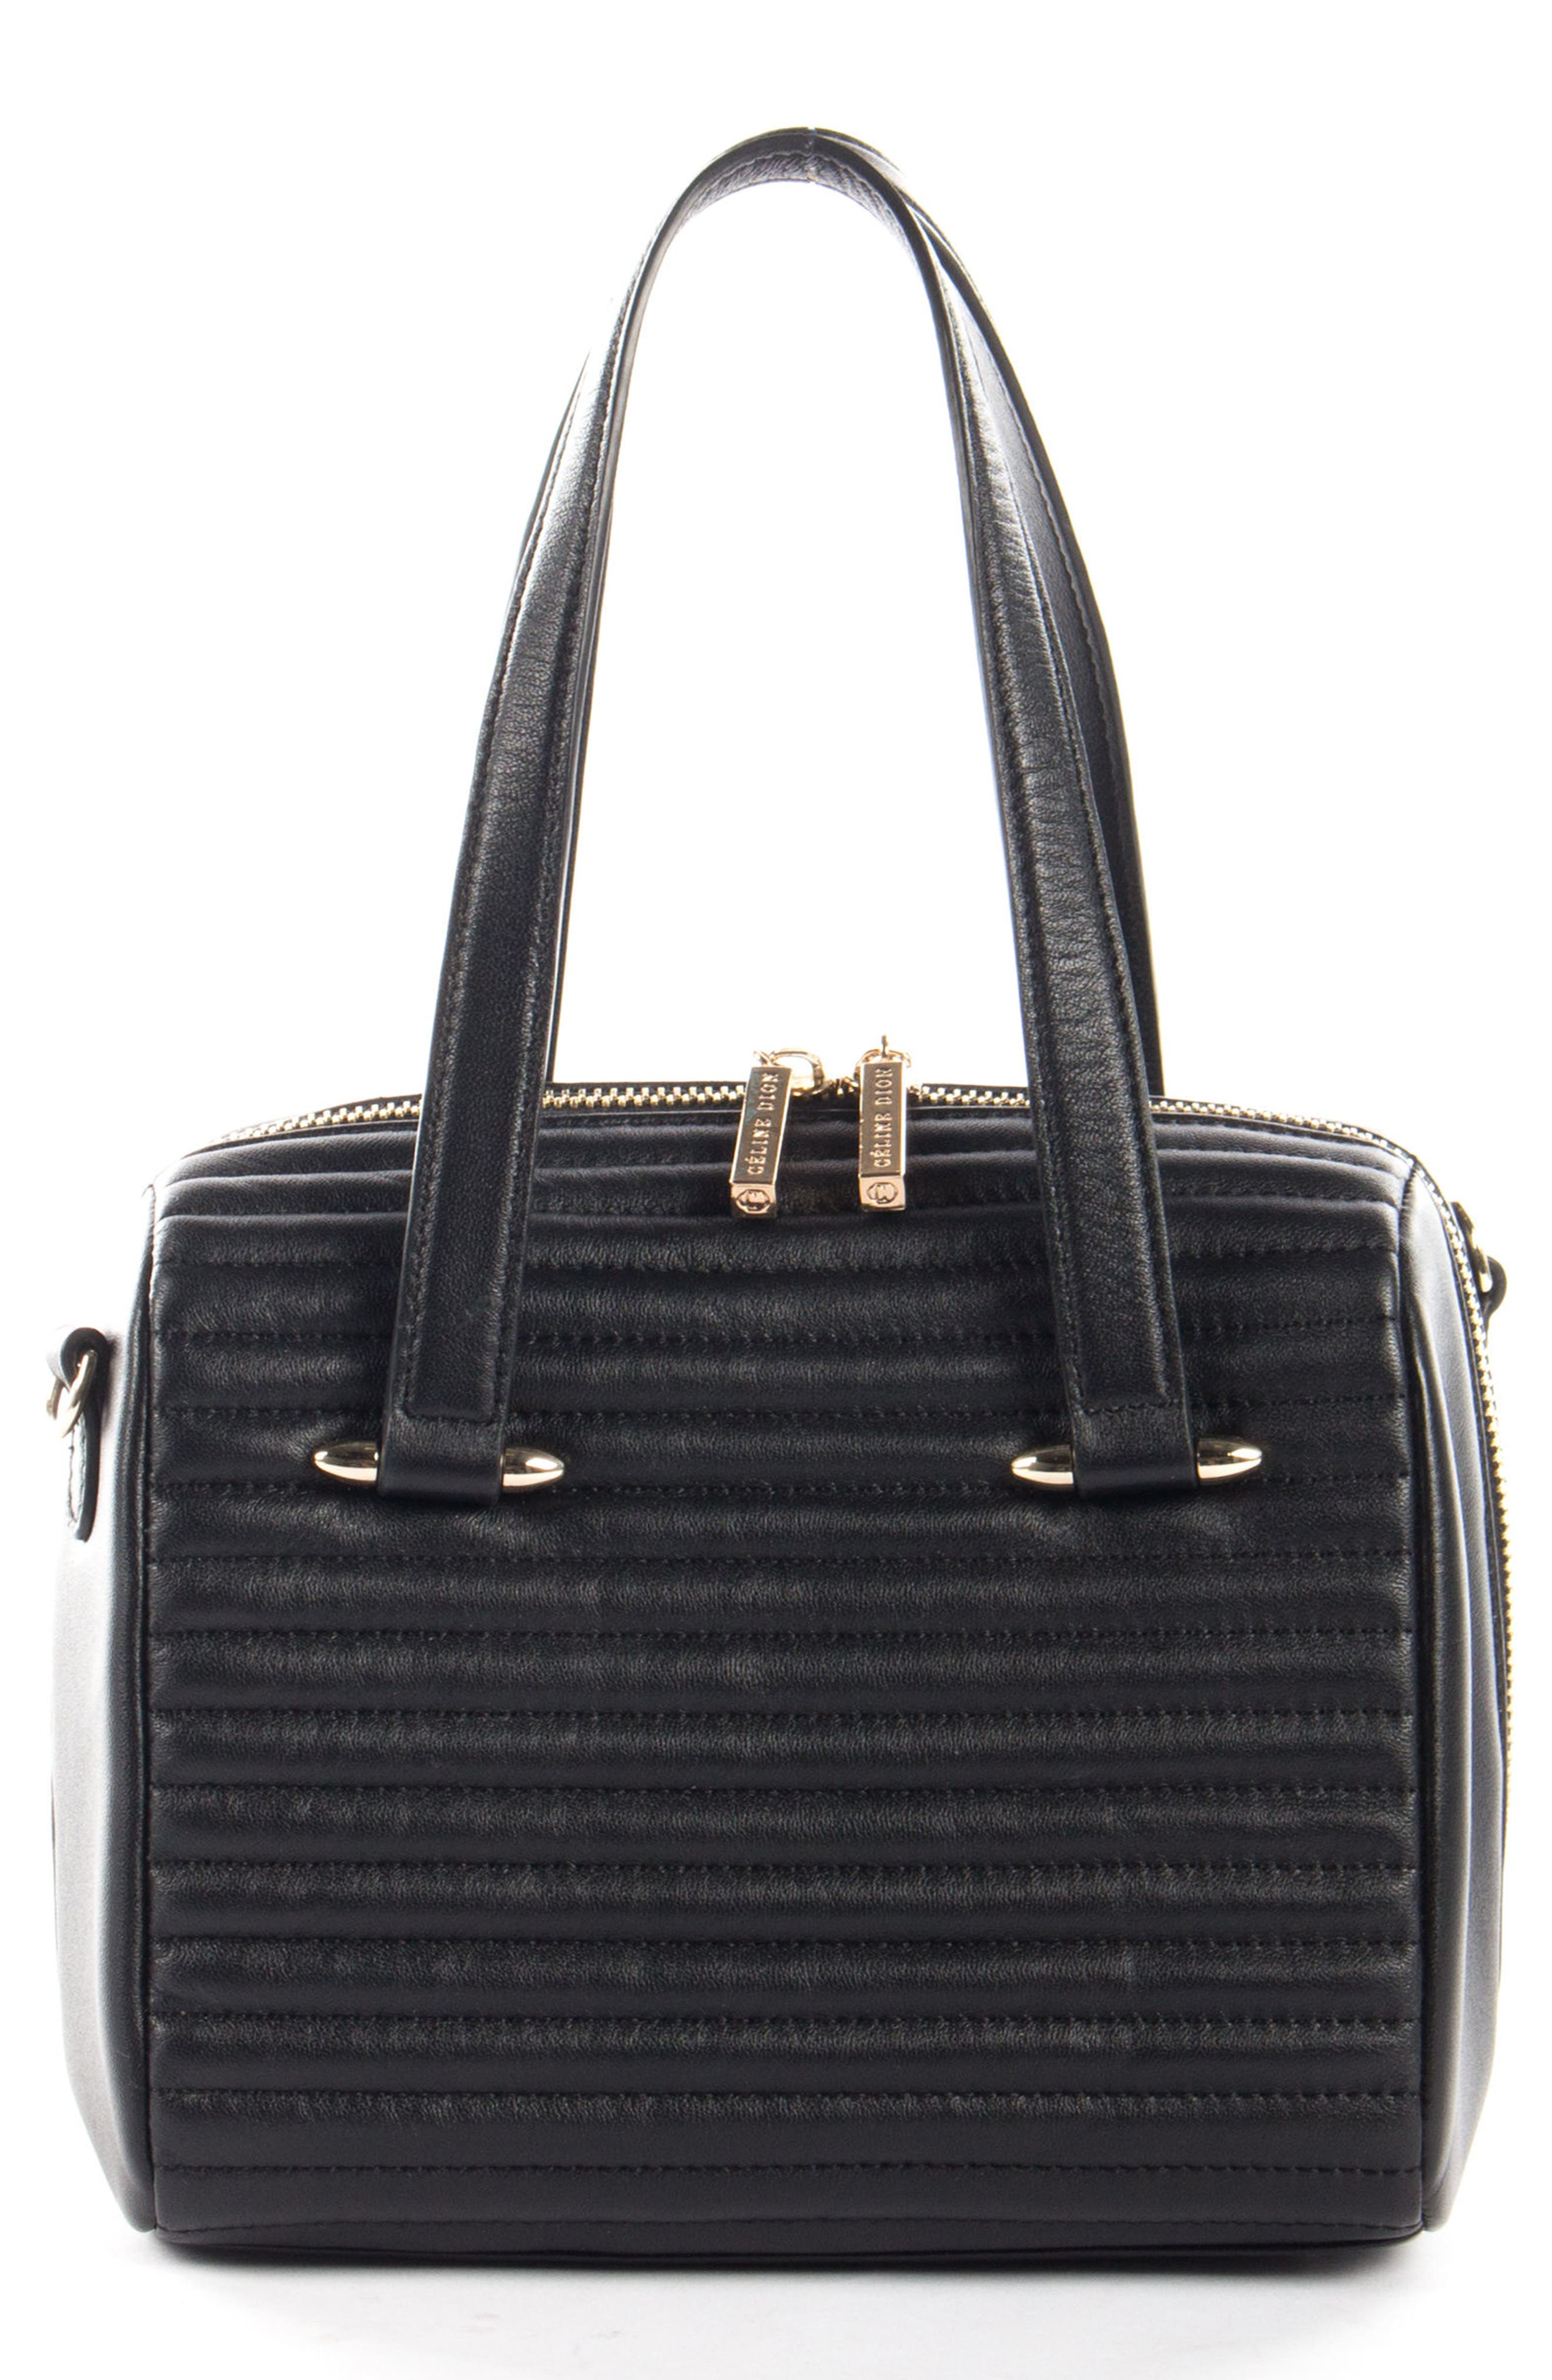 CELINE DION Céline Dion Vibrato Quilted Lambskin Leather Tote